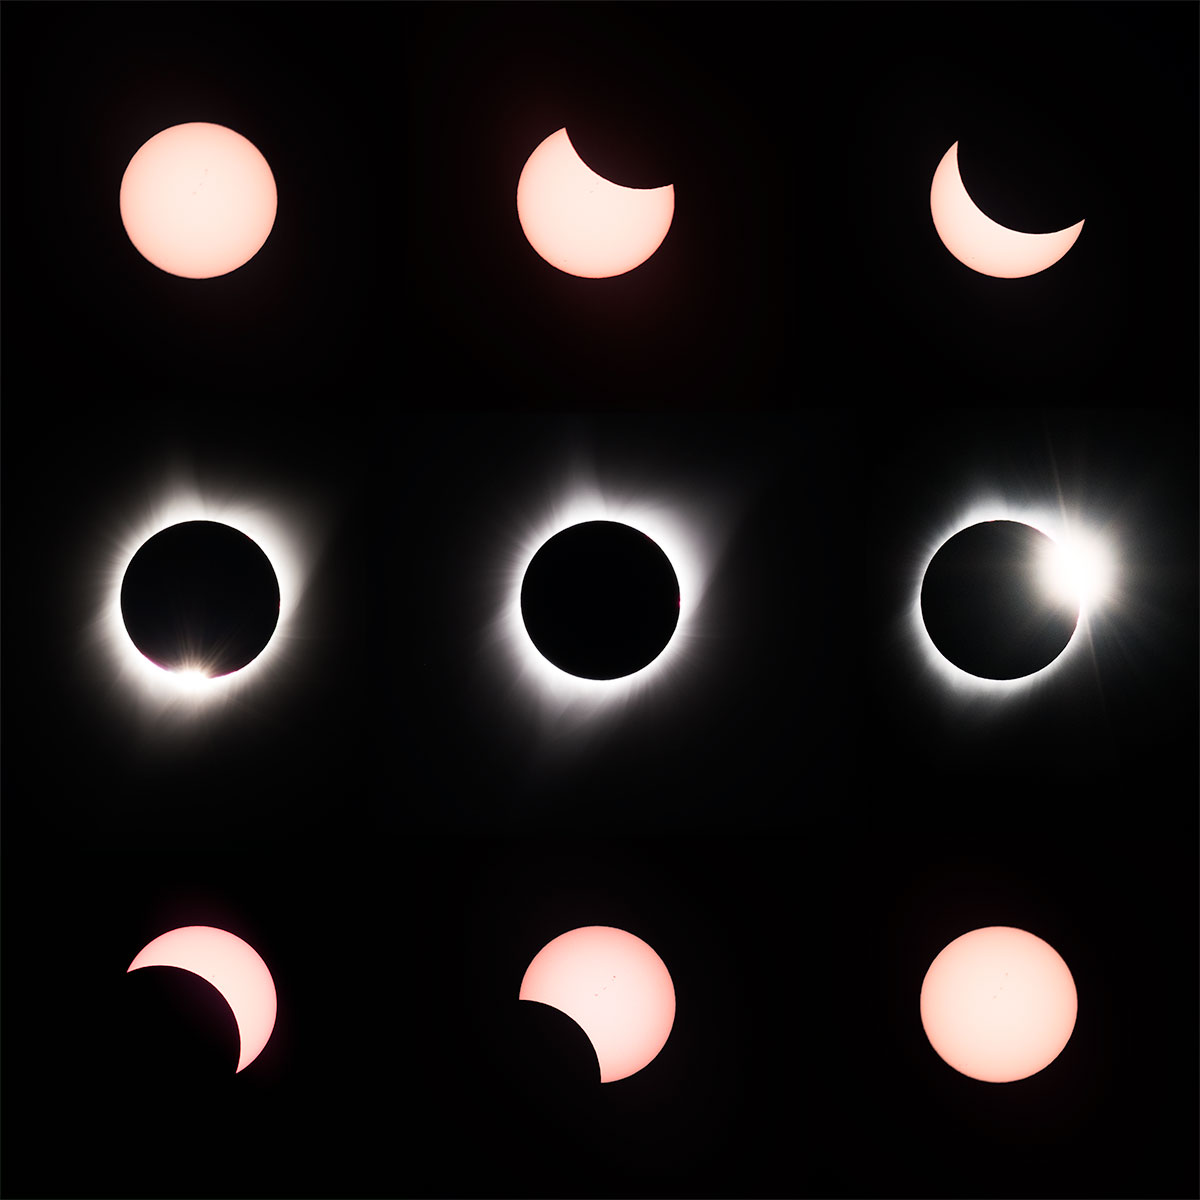 Eclipse, Corvallis, OR, 2017